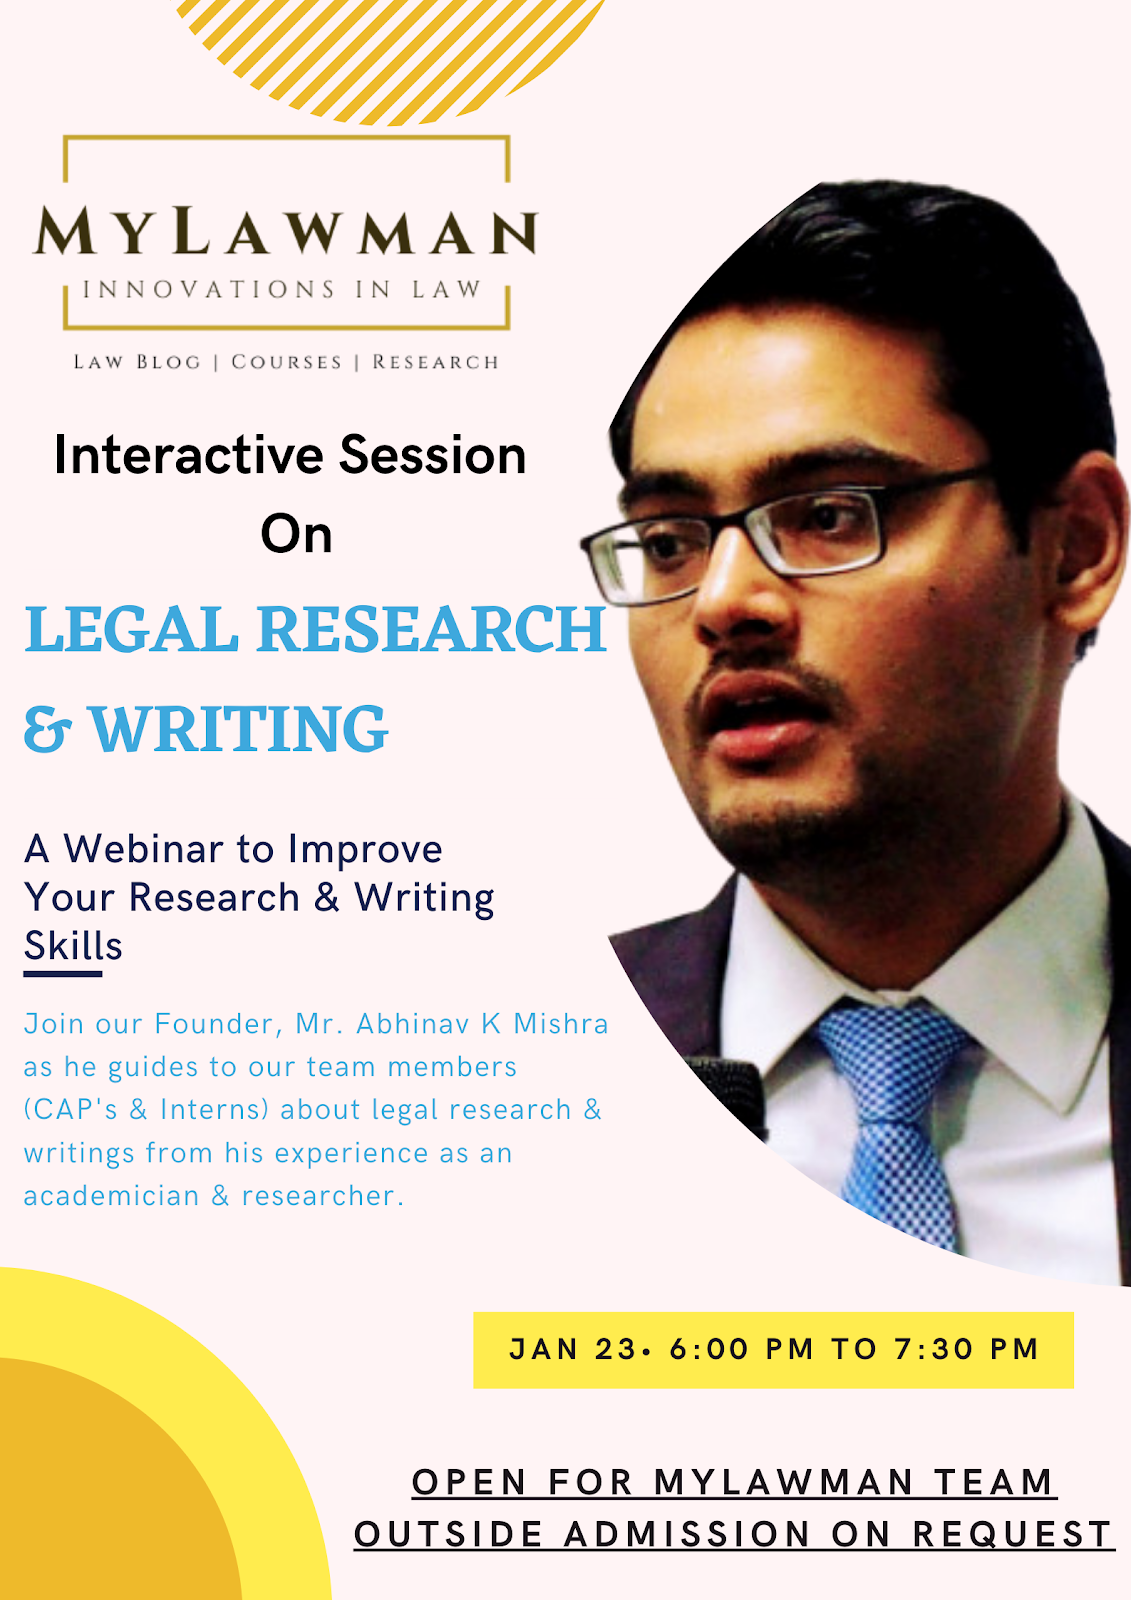 Interactive Session on Legal Research & Writing